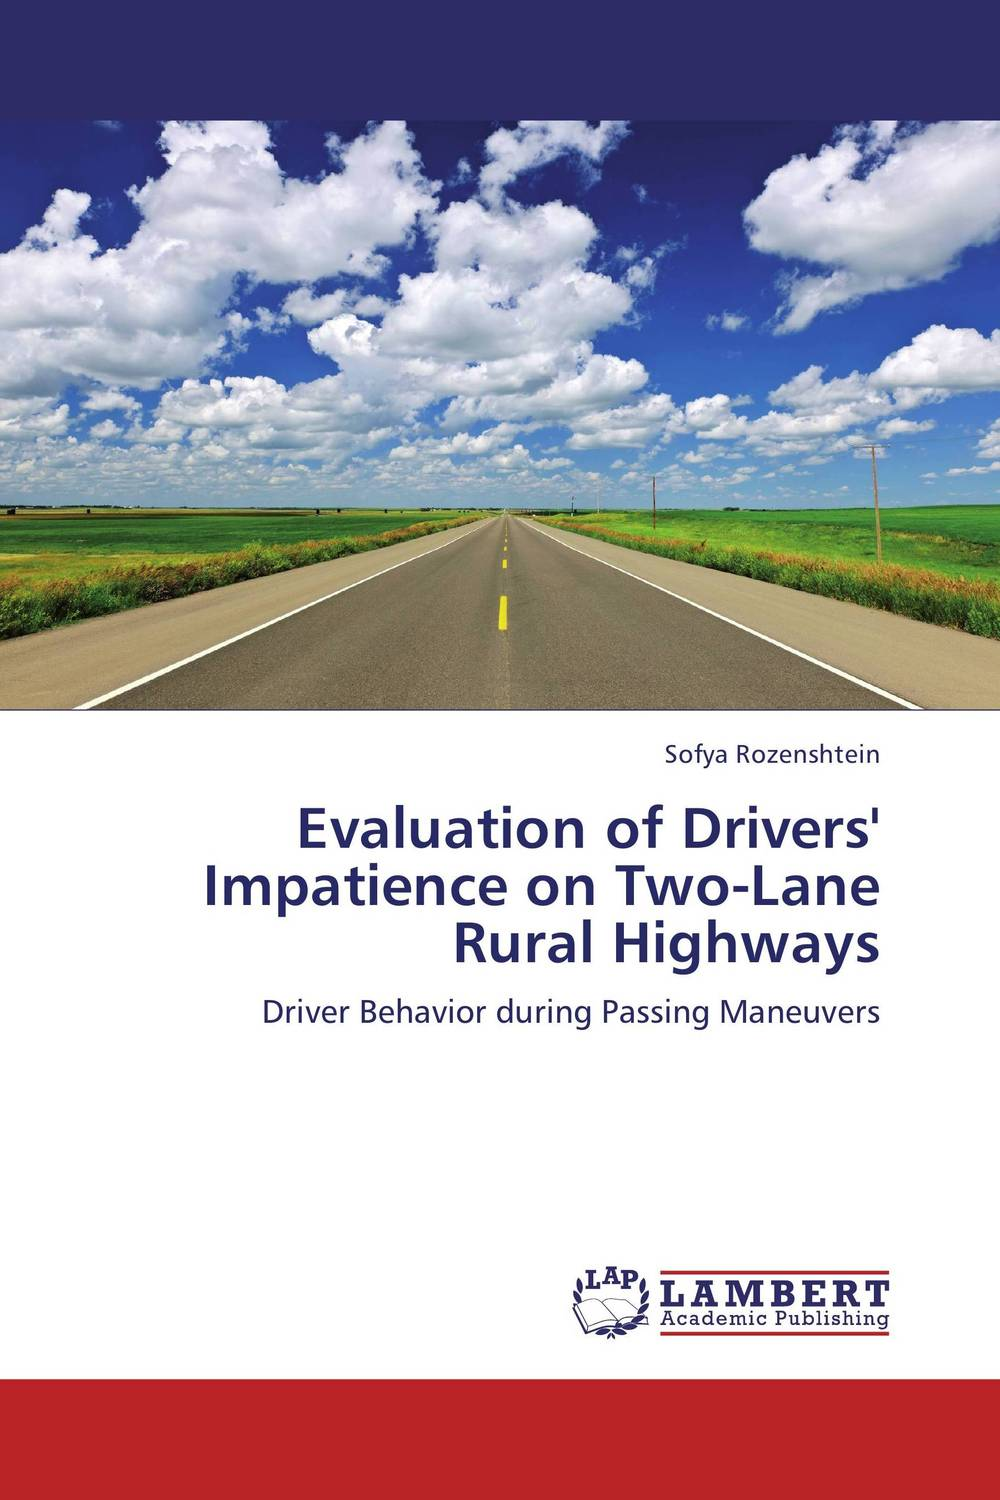 Evaluation of Drivers' Impatience on Two-Lane Rural Highways road trip usa eighth edition cross country adventures on america s two lane highways